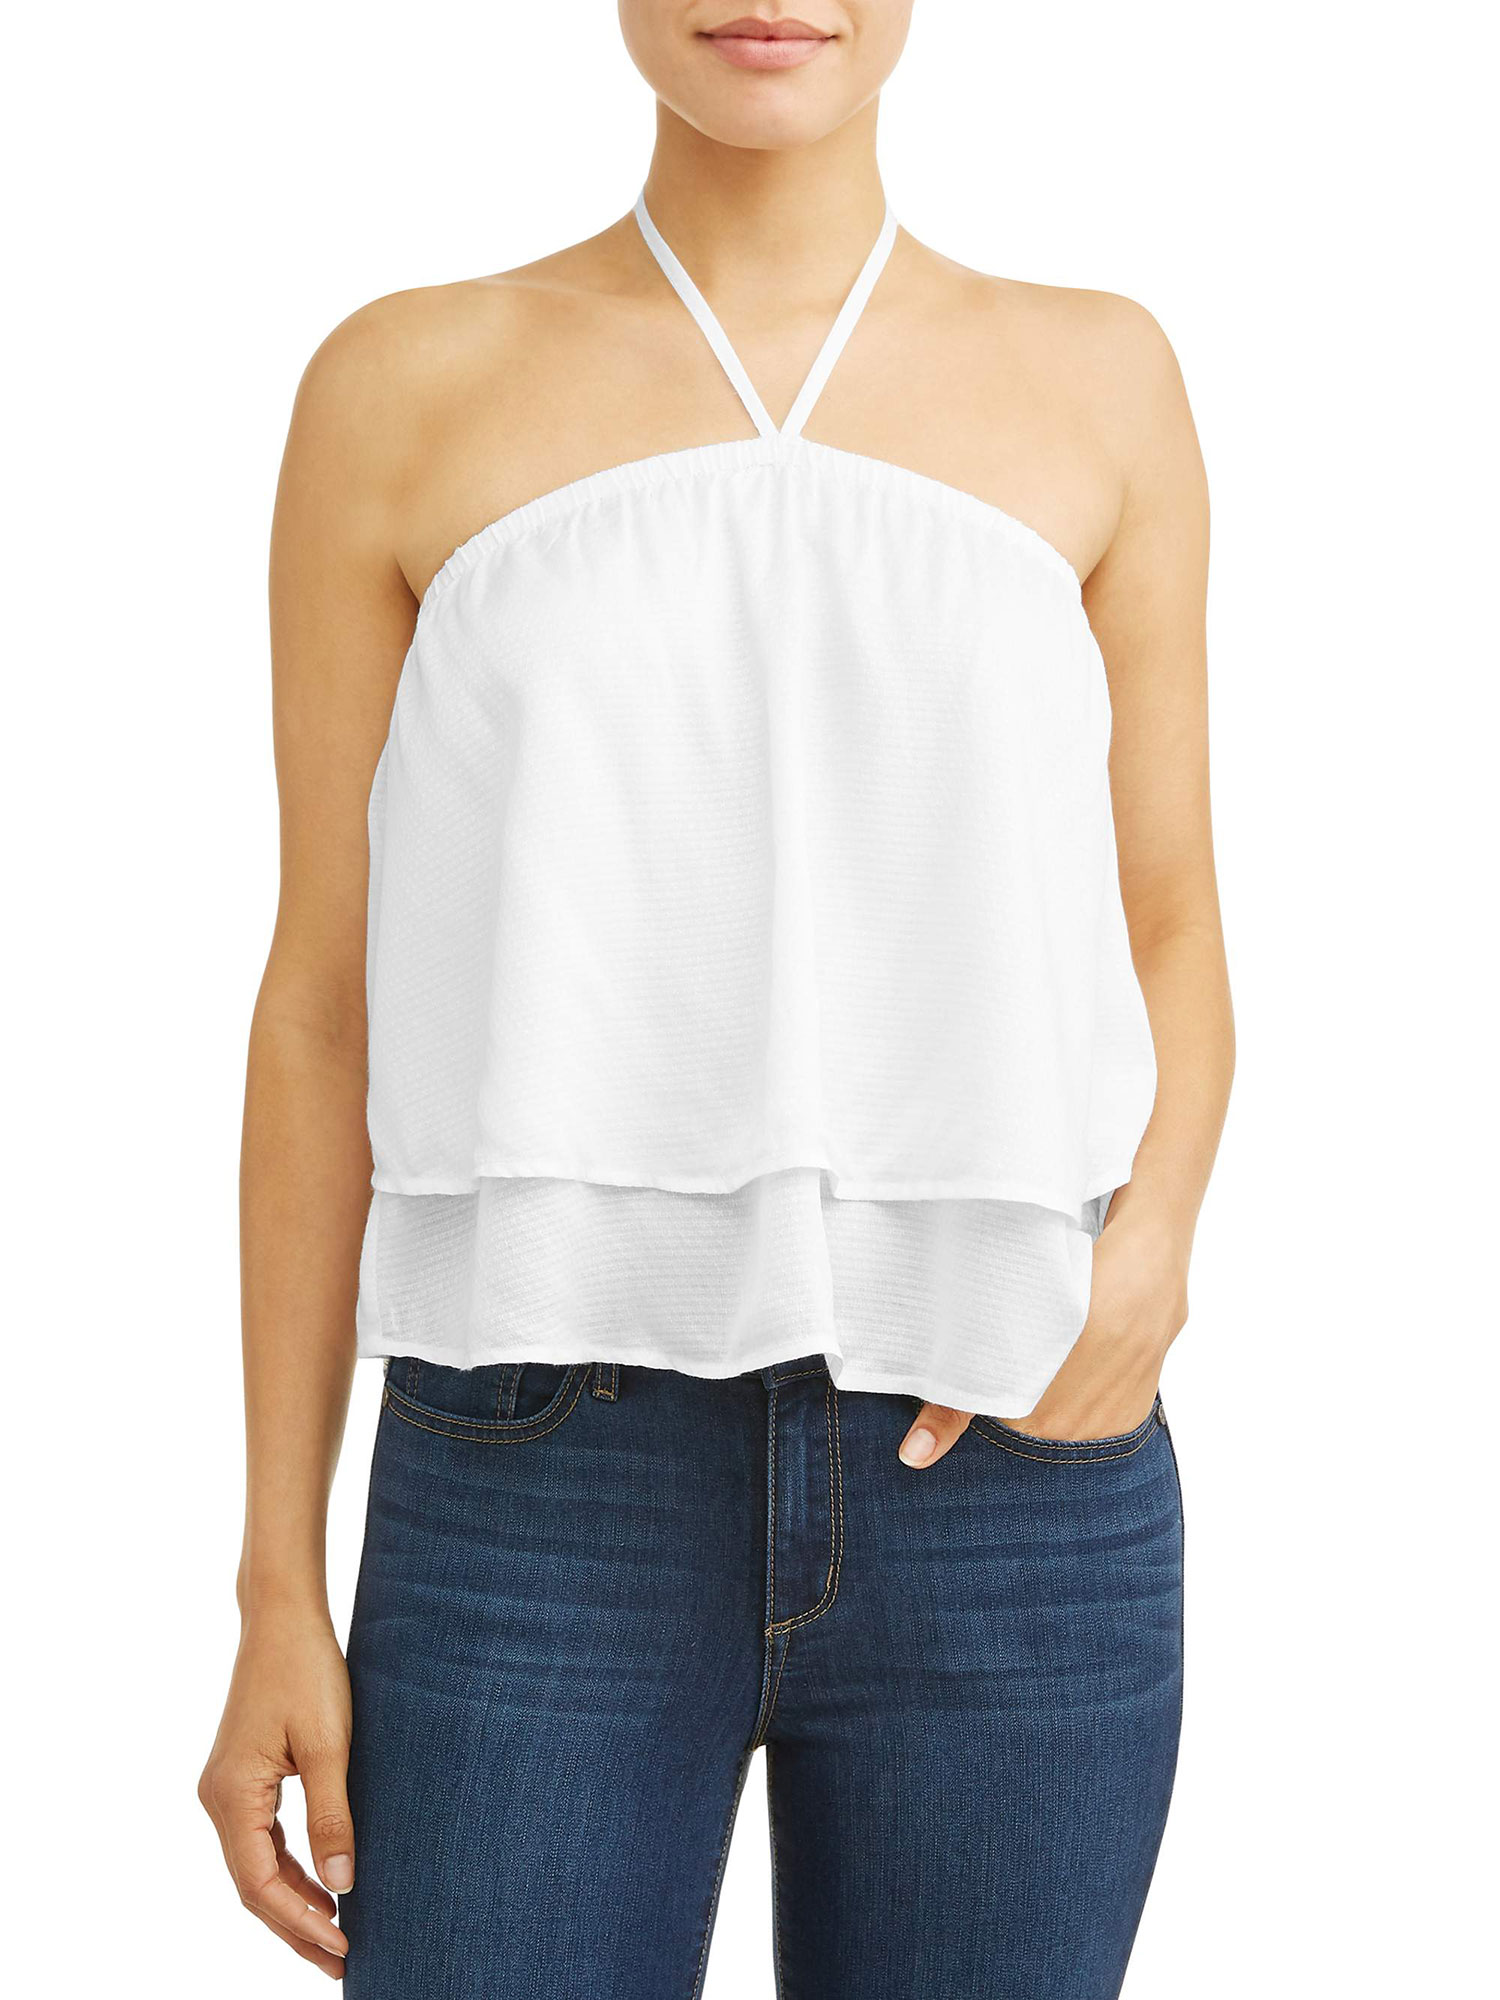 Sofia Vergara Spring Collection walmart - This clean and simple white halter top is anything but boring.